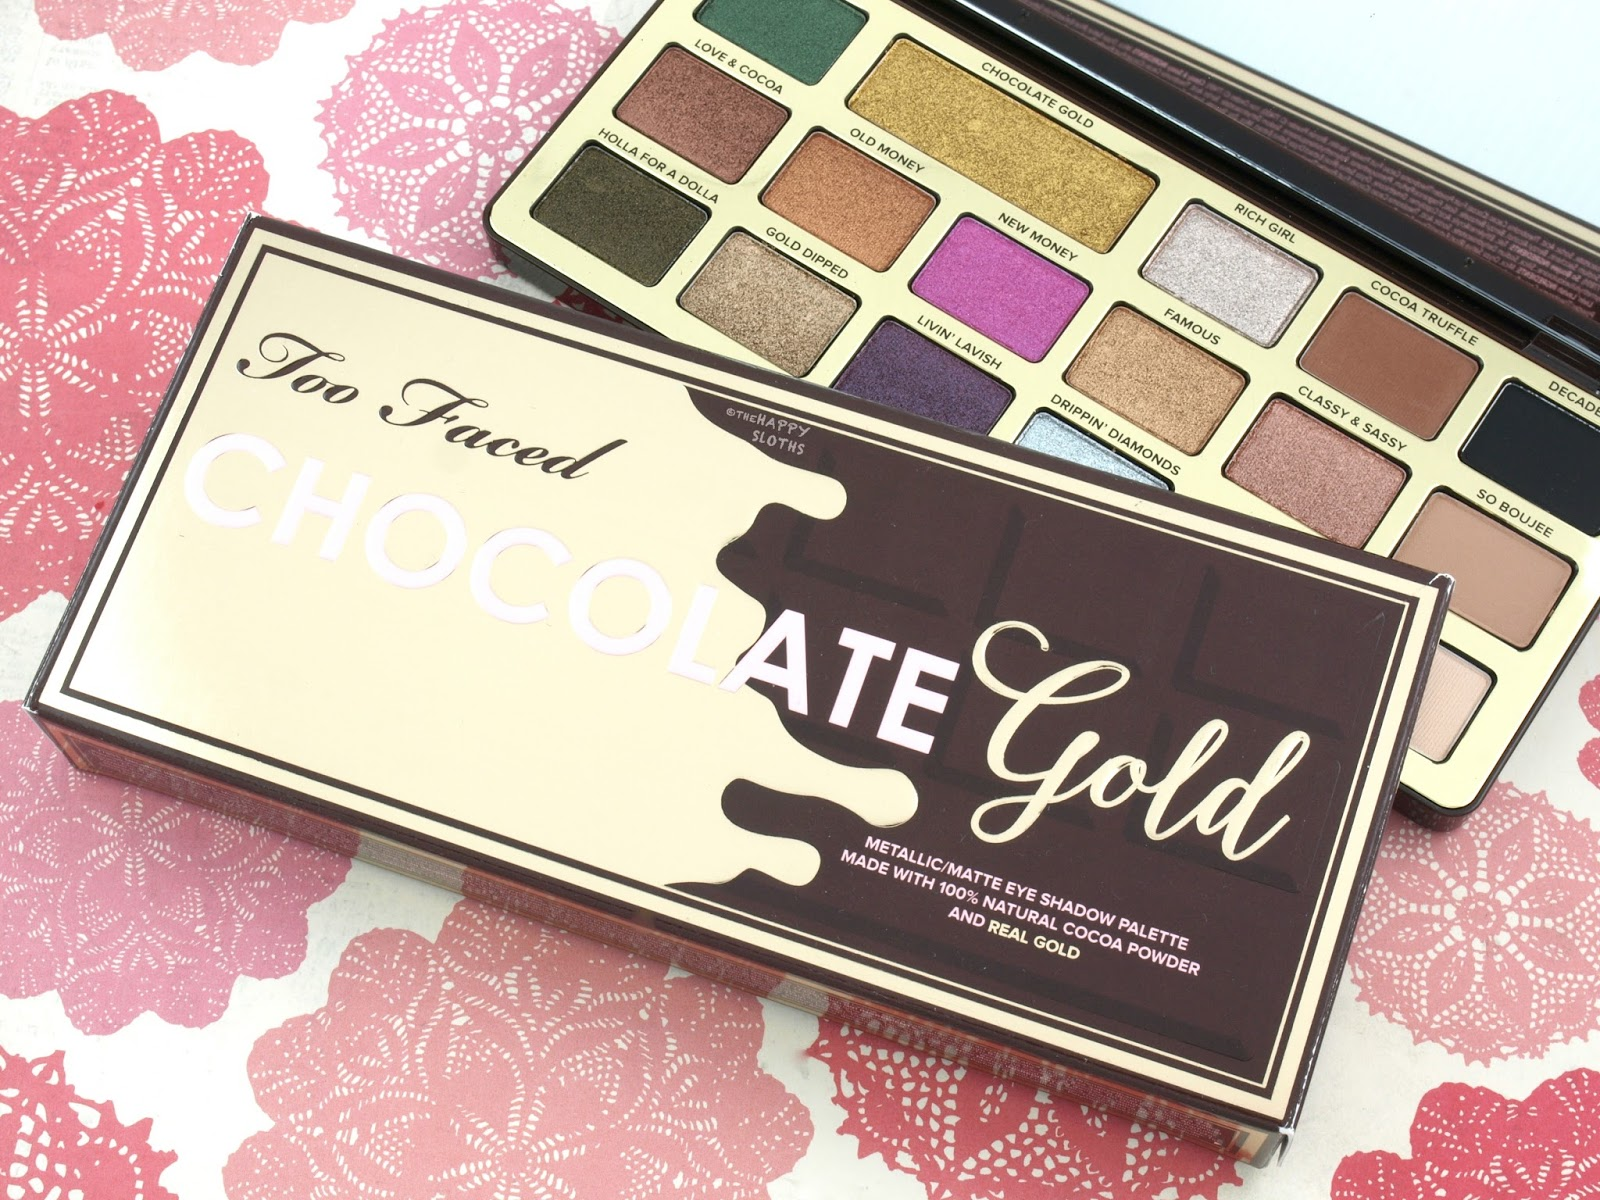 Too Faced Chocolate Gold Eyeshadow Palette: Review and Swatches